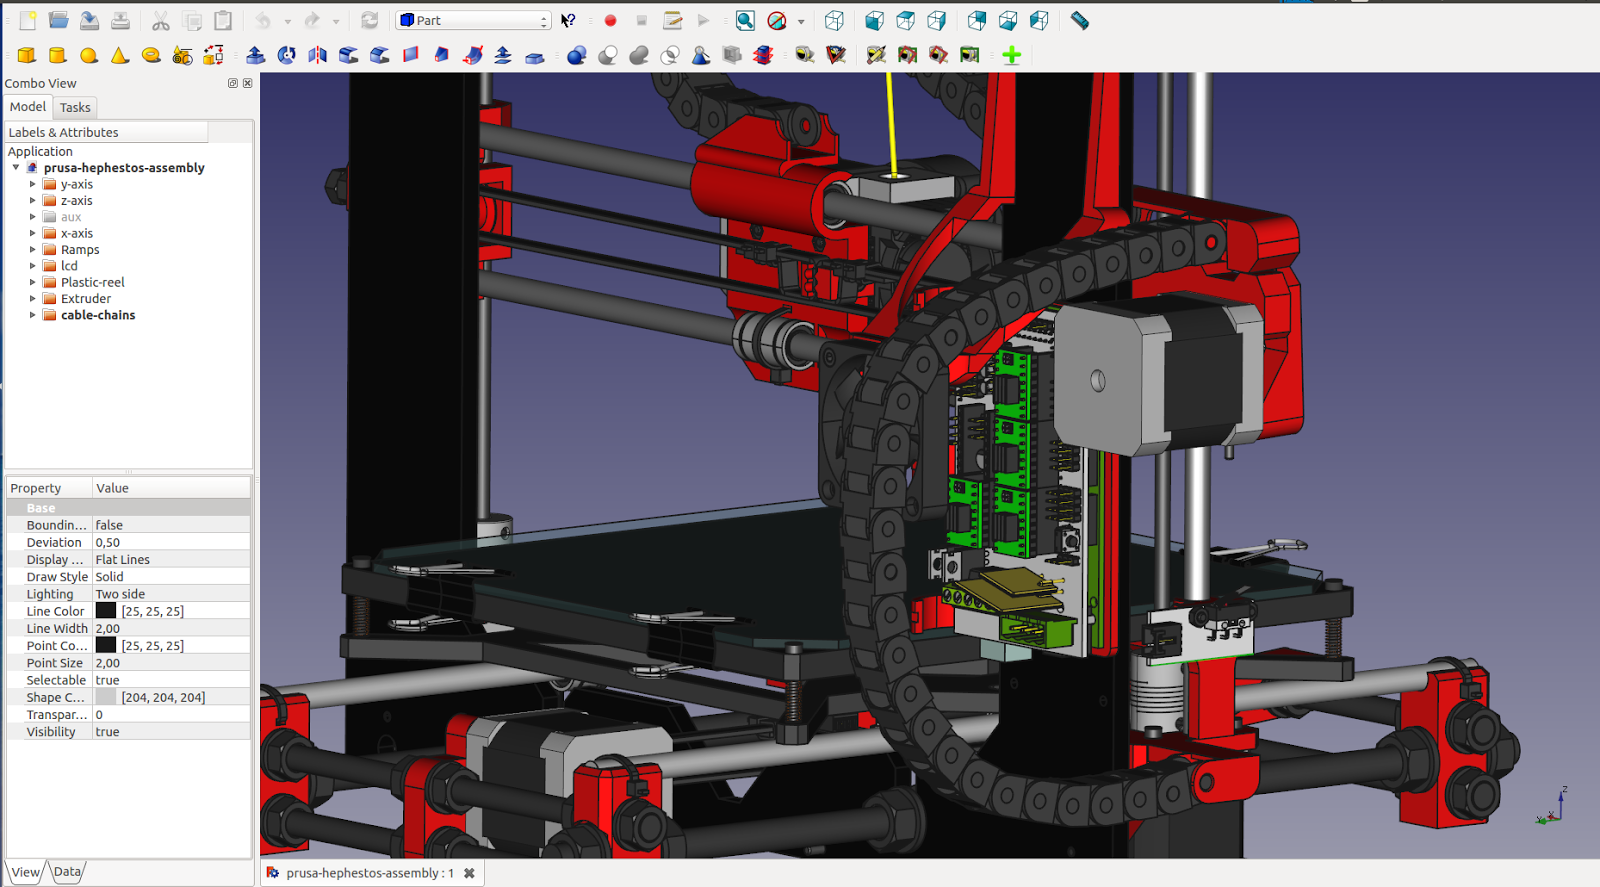 Cad design software for 3d printing chase canad Free cad software for 3d printing